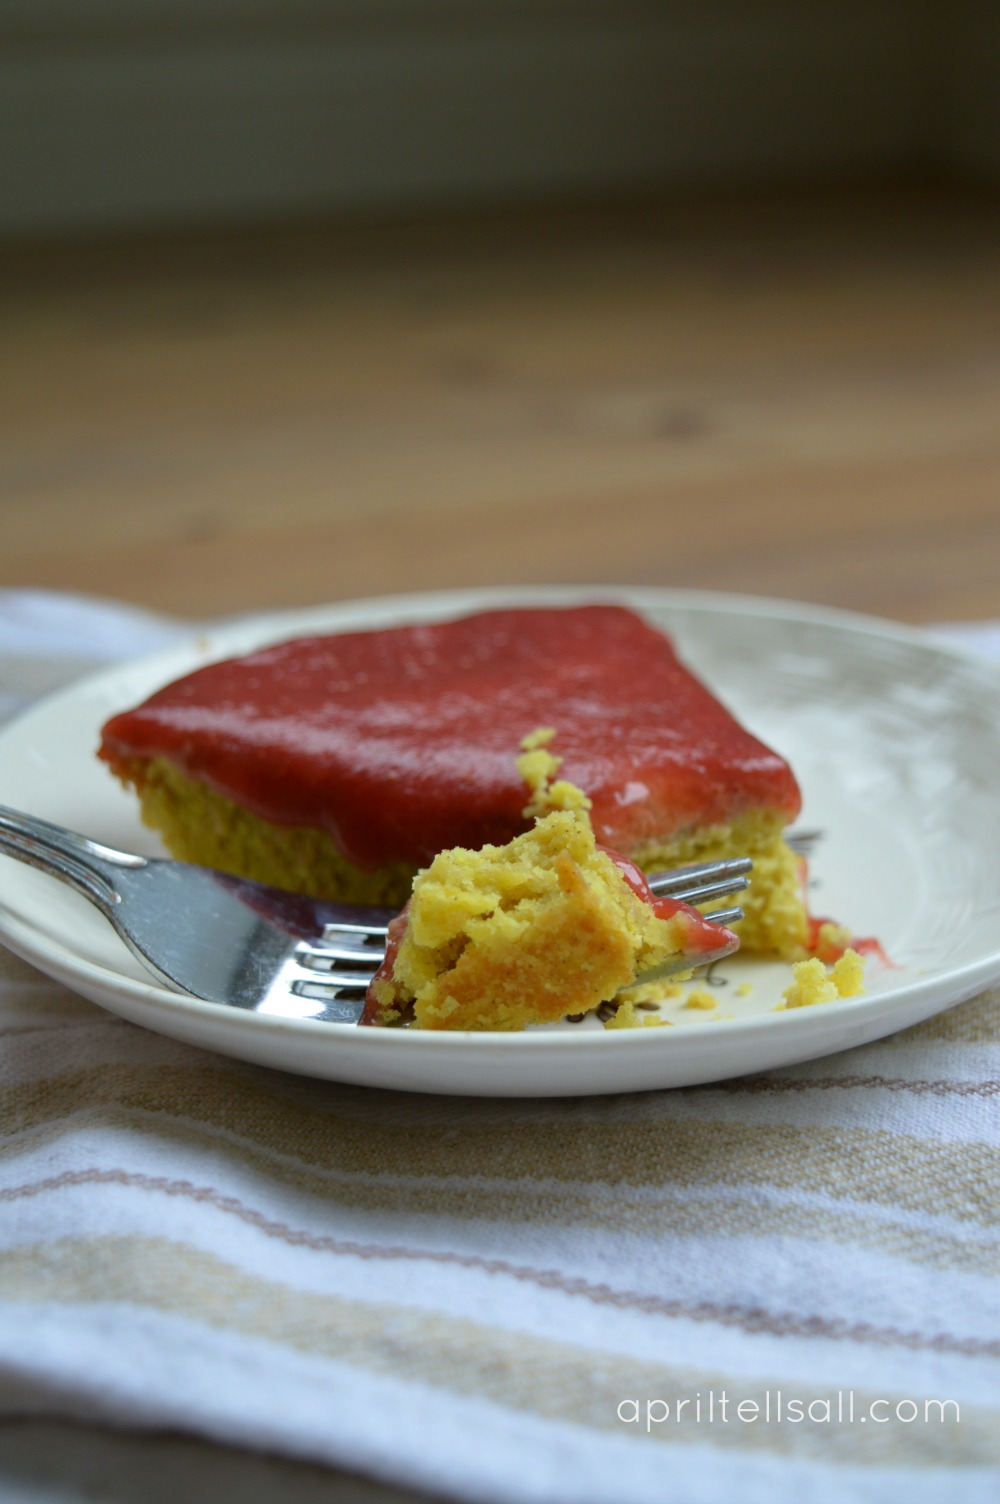 Fine Crisp Cake With Berry Compote April Tells All